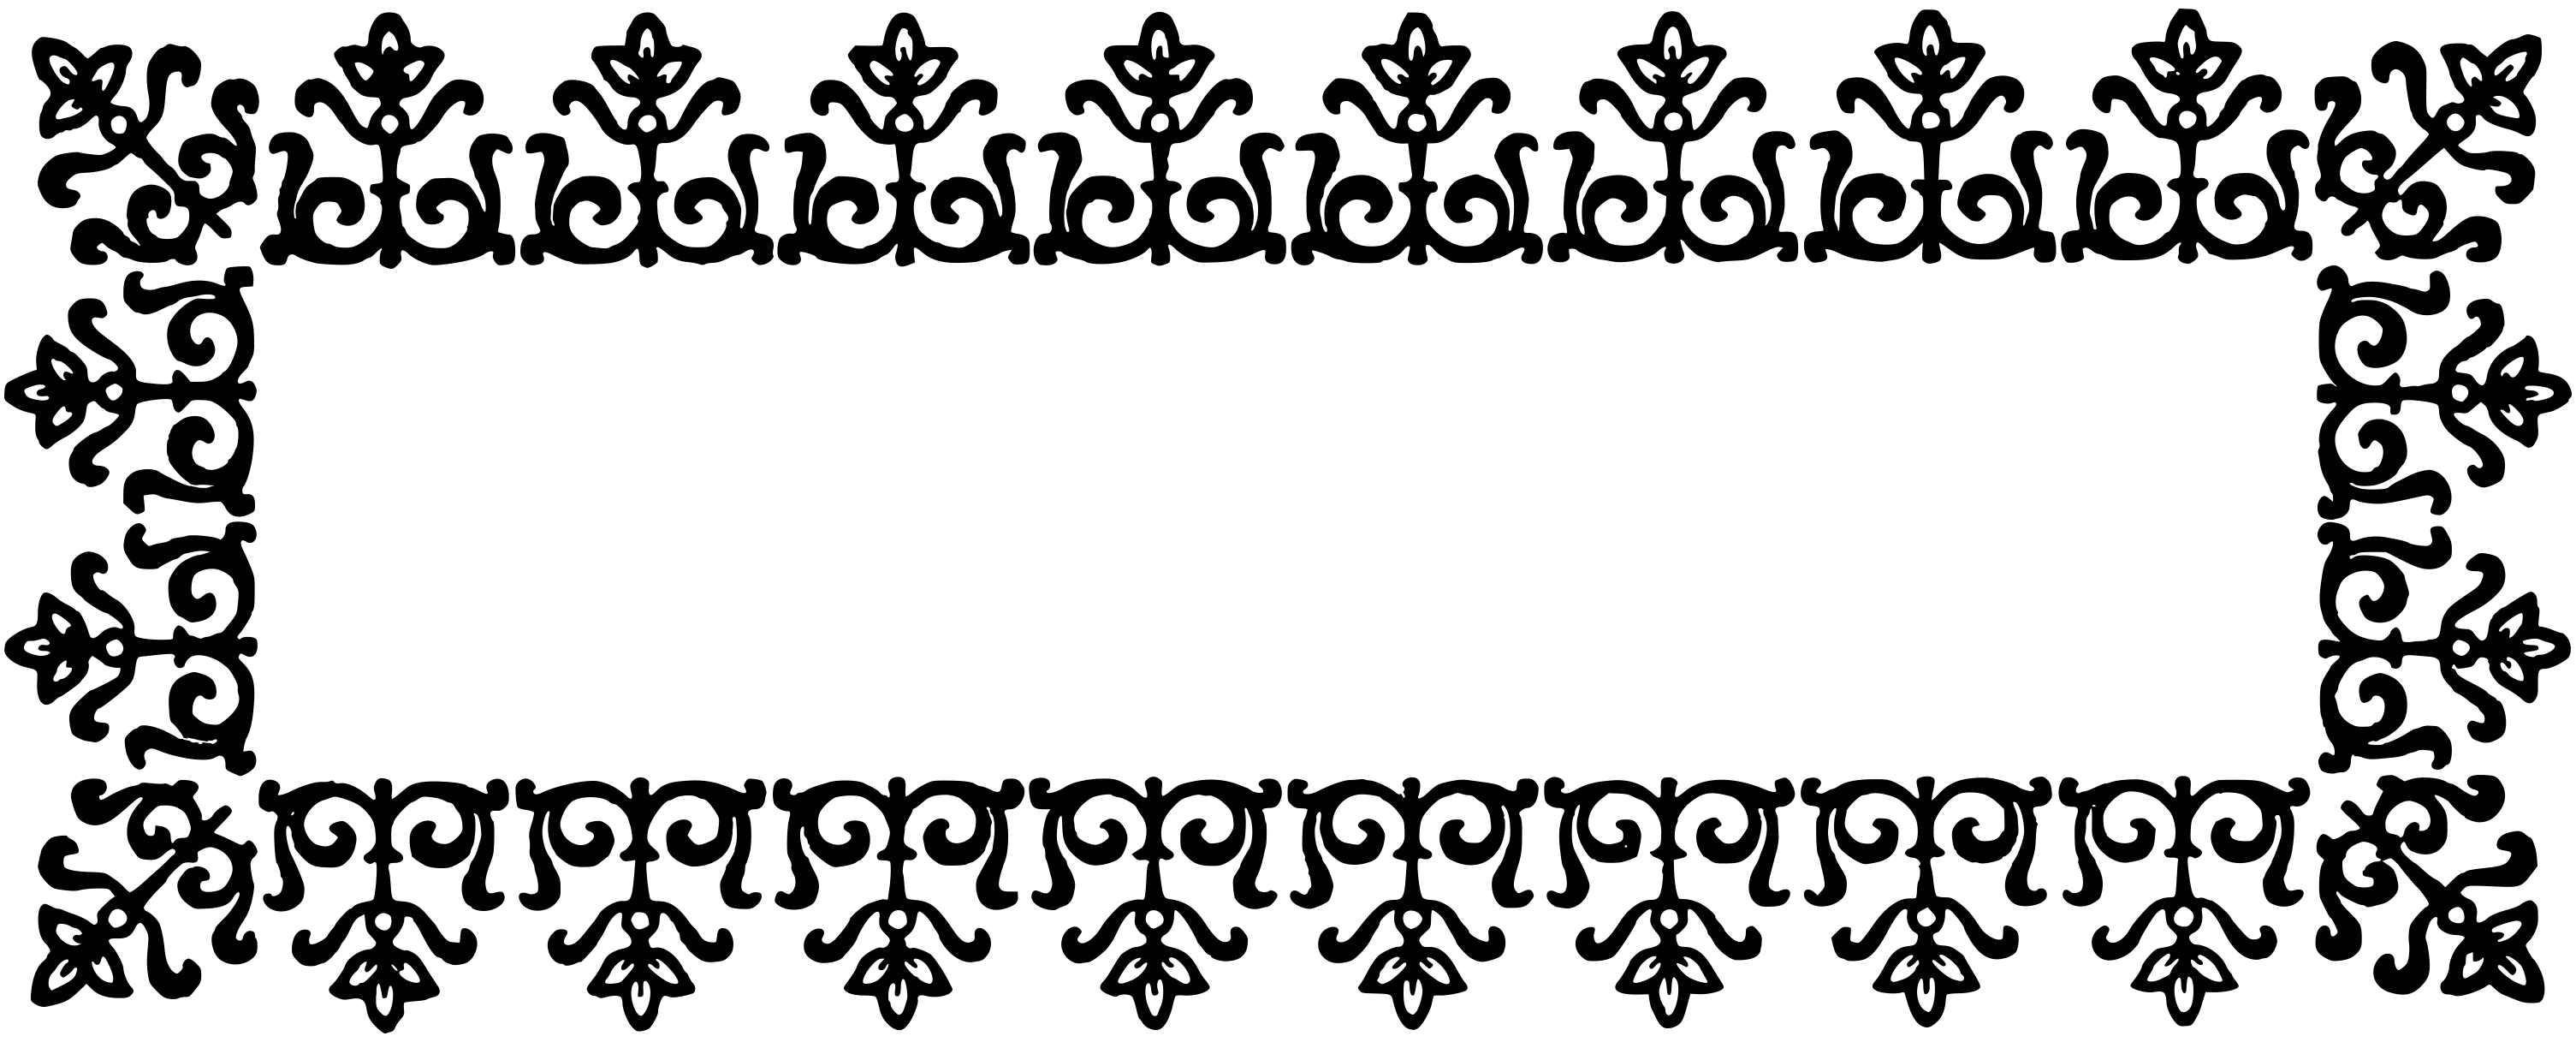 Camp vector border png. Free stock images vintage